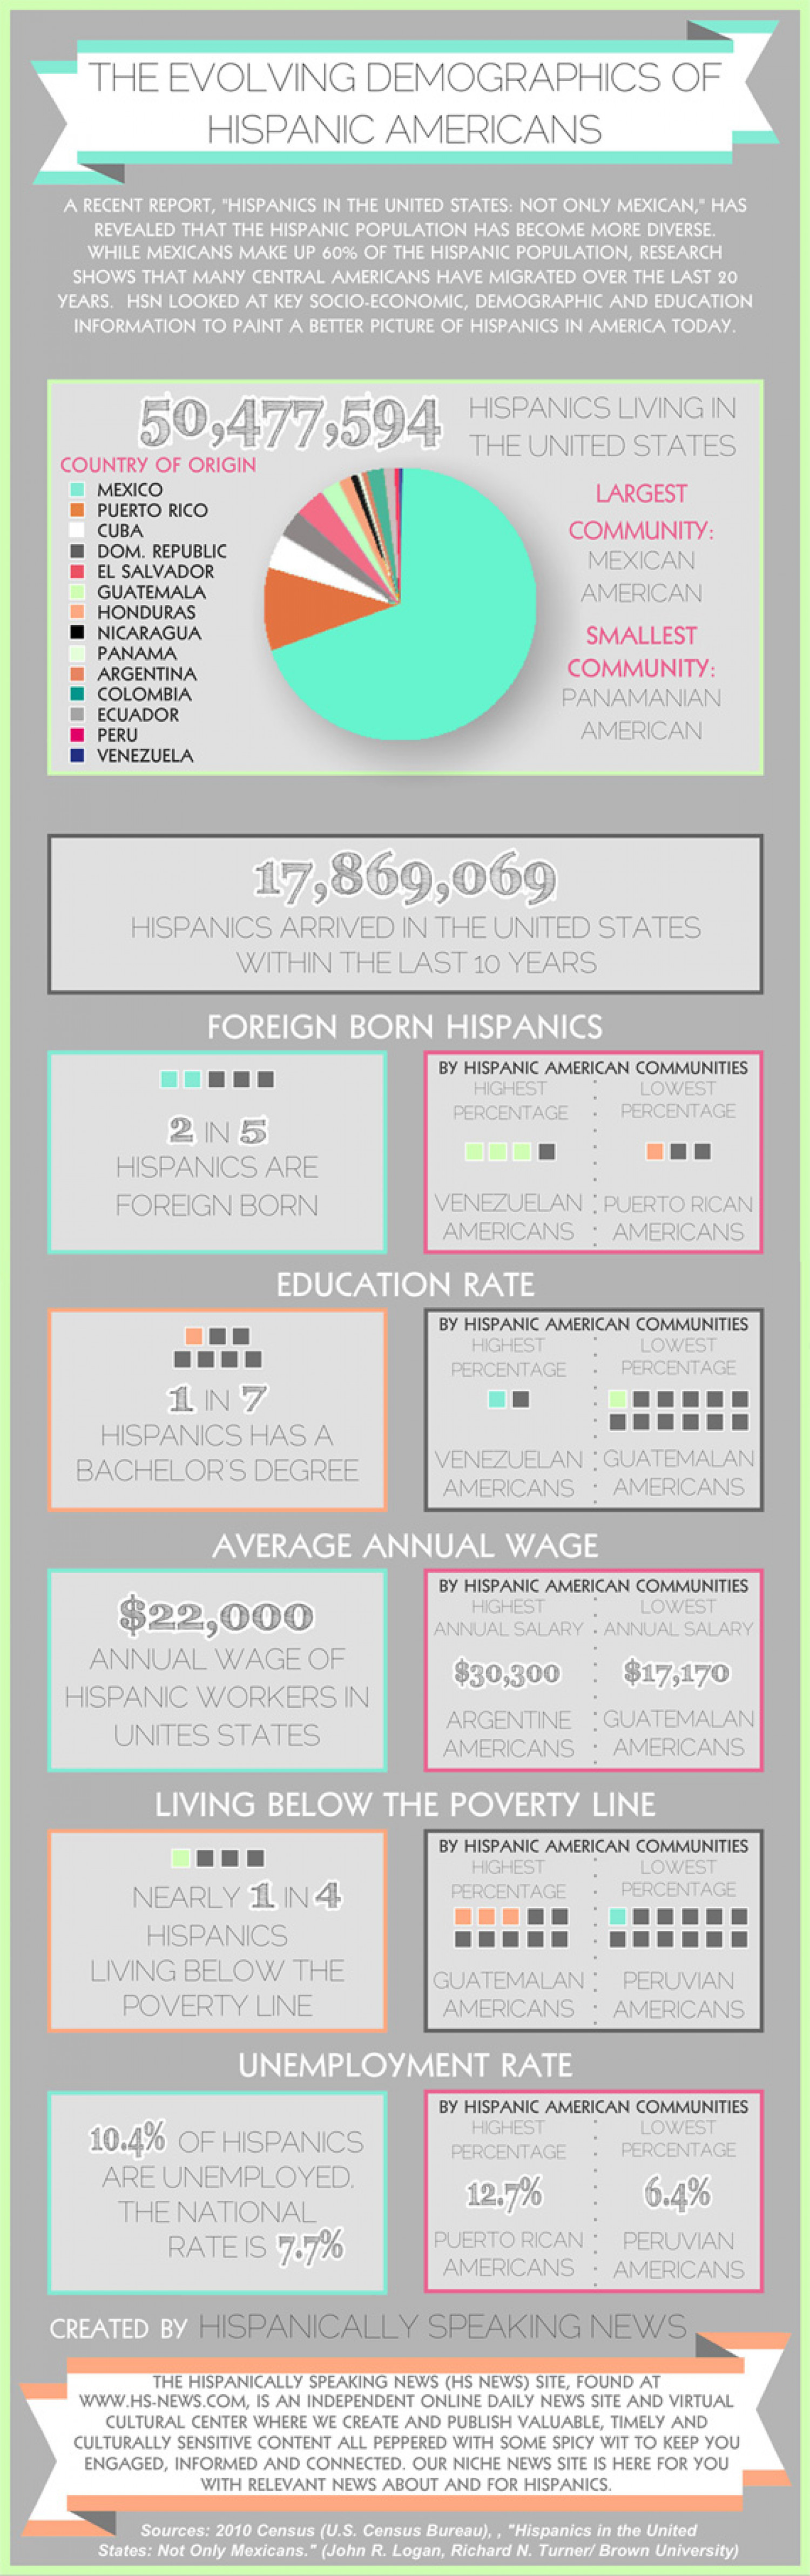 The Evolving Demographics of Hispanic Americans Infographic